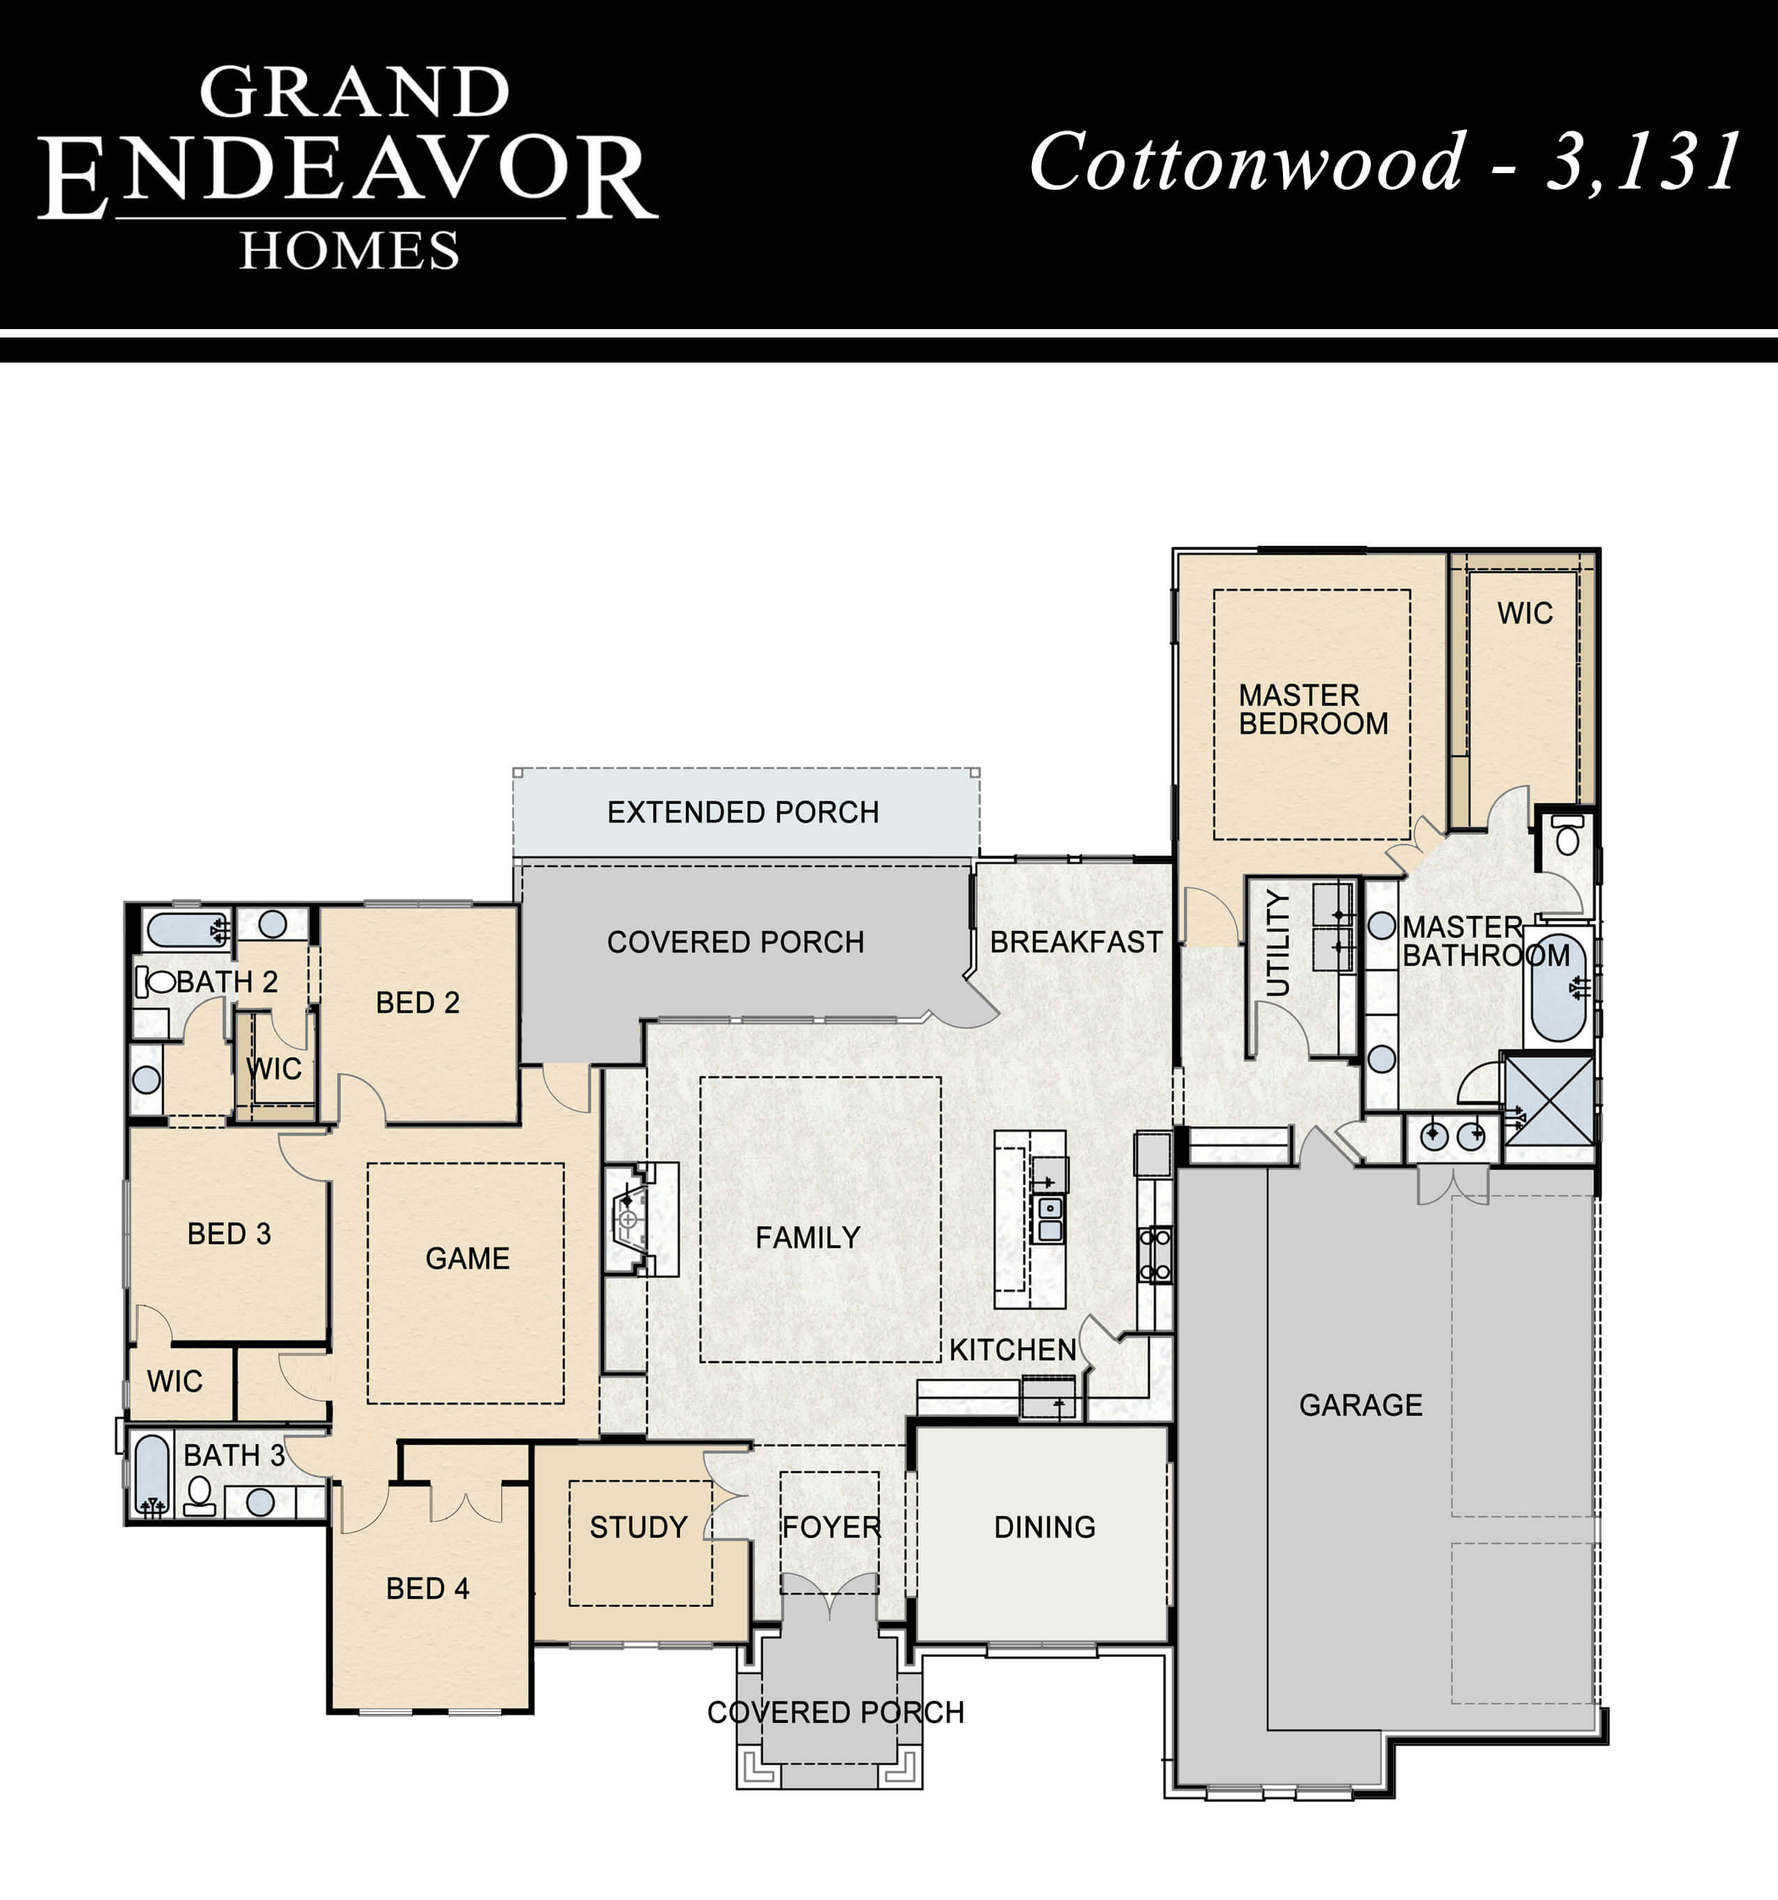 Grand Endeavor Homes Floor Plans Cottonwood Grand Endeavor